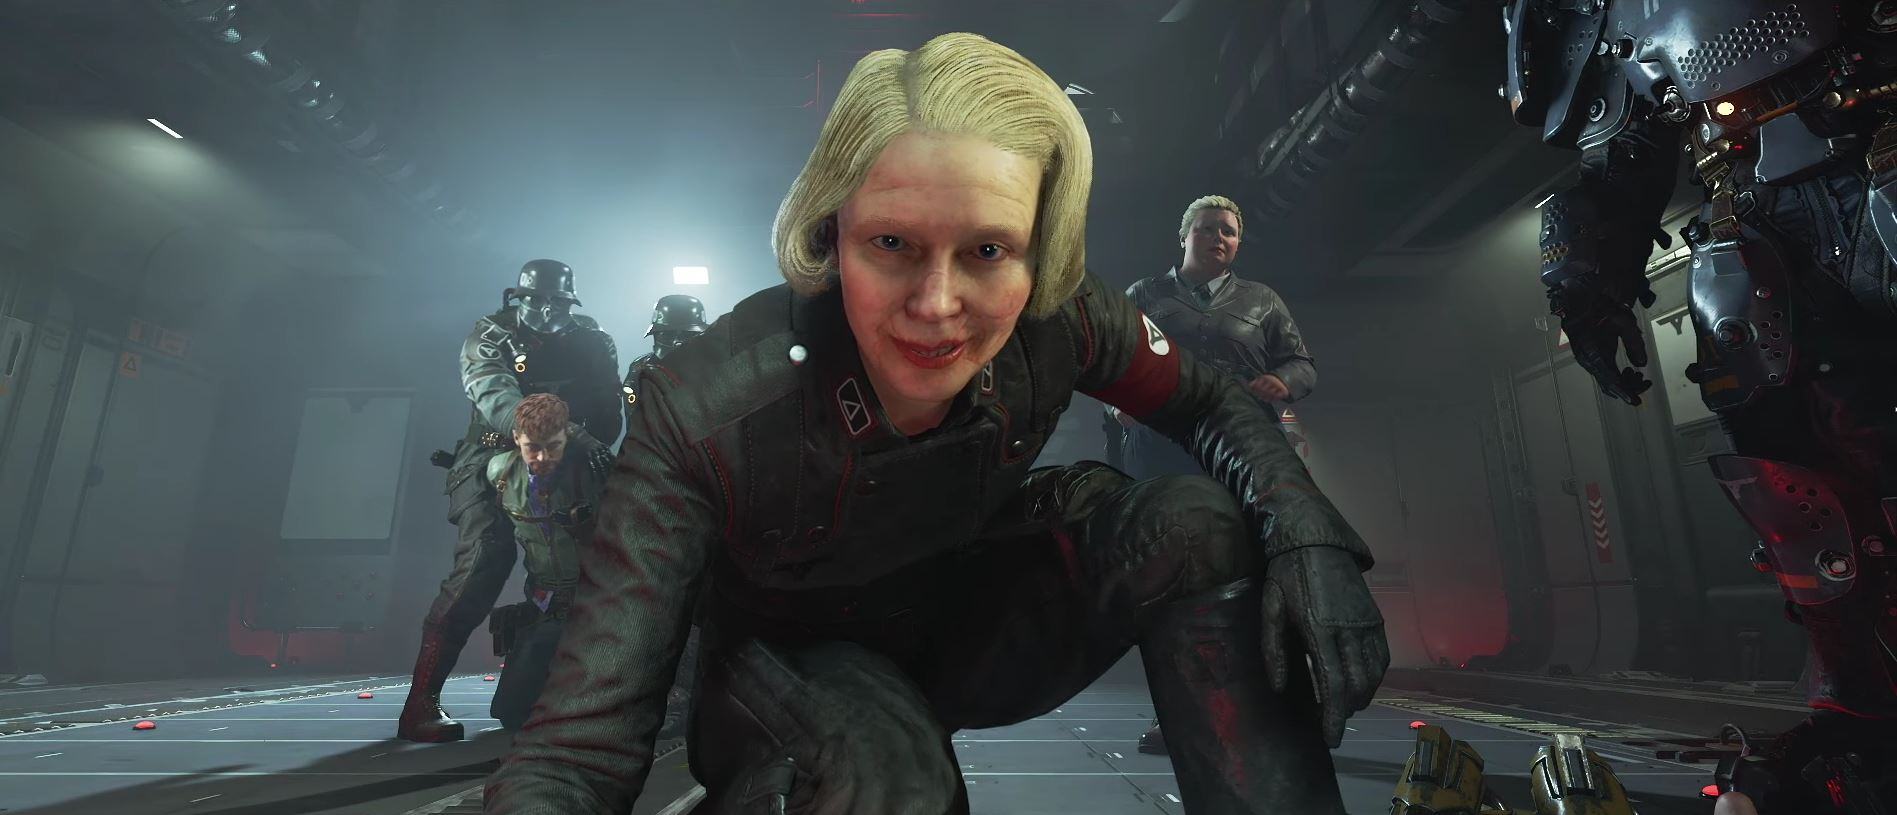 wolfenstein-2-the-news-colossus-irene engel